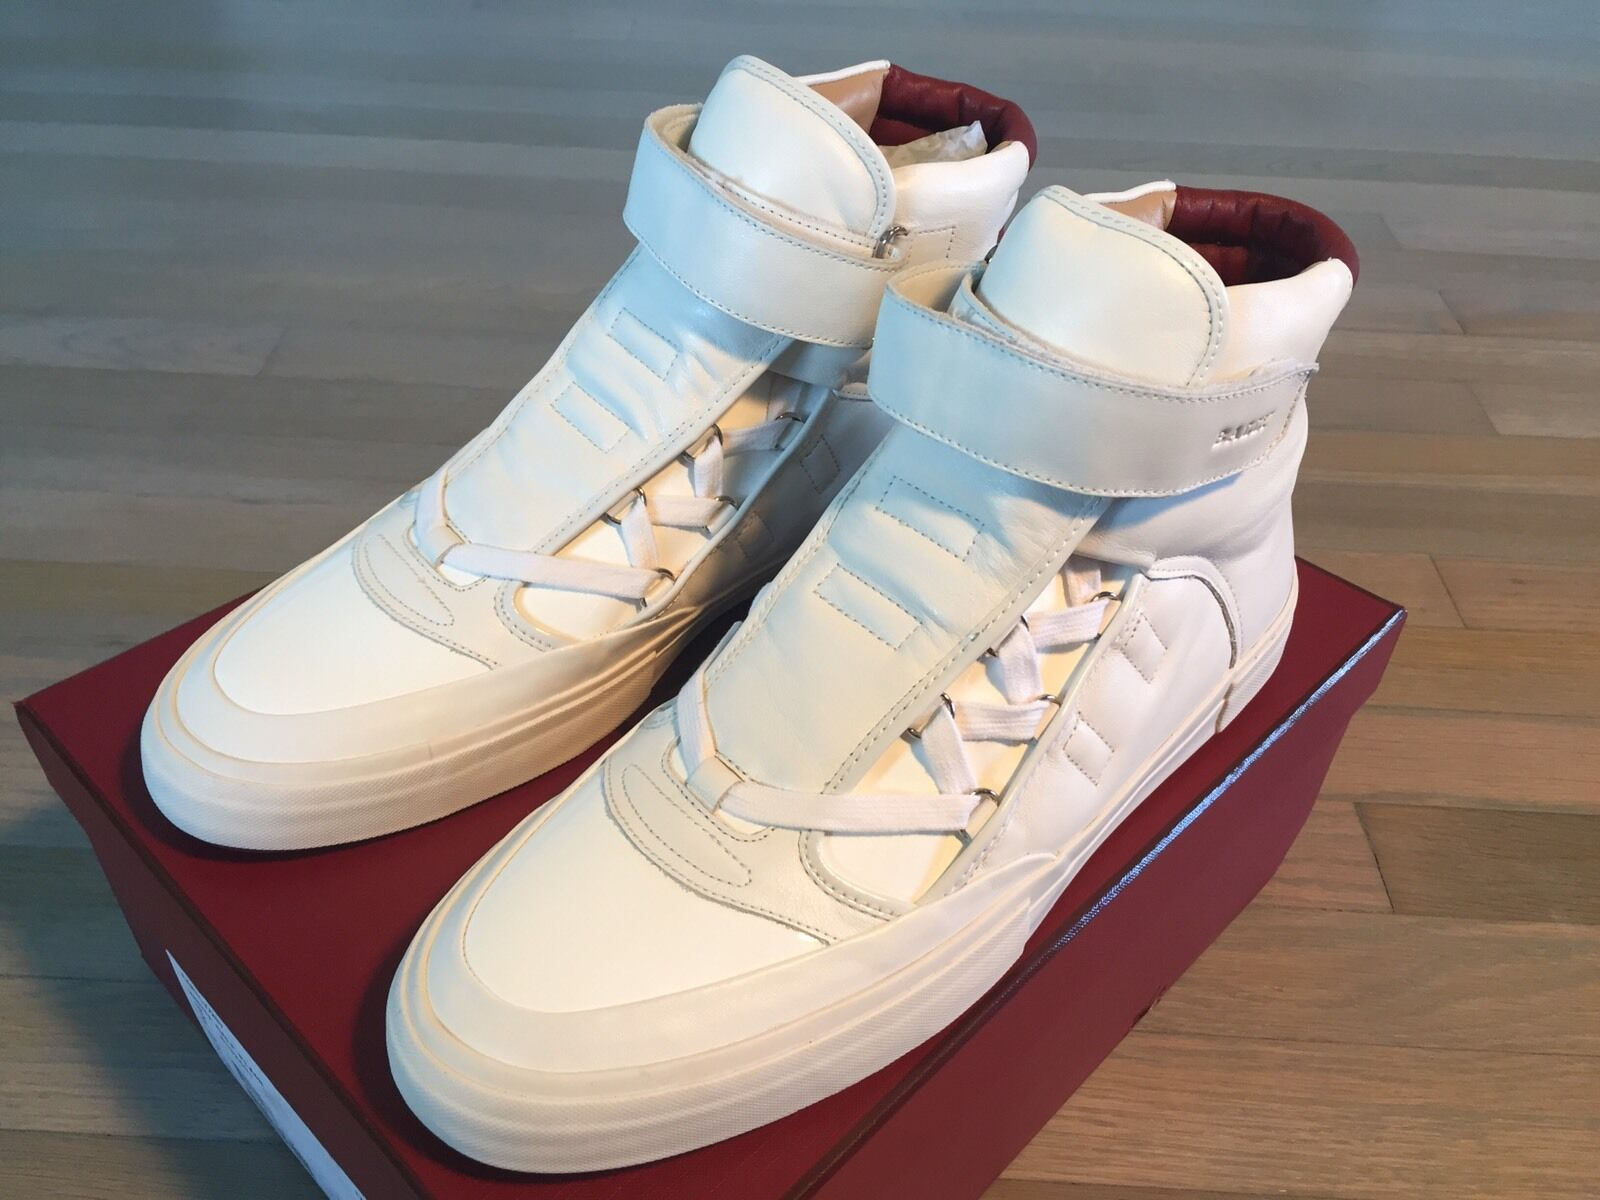 new arrival d9dc1 8f18a 700 White Eartly Leather High Tops Sneakers size US 12 Bally  nntelk3195-Boots